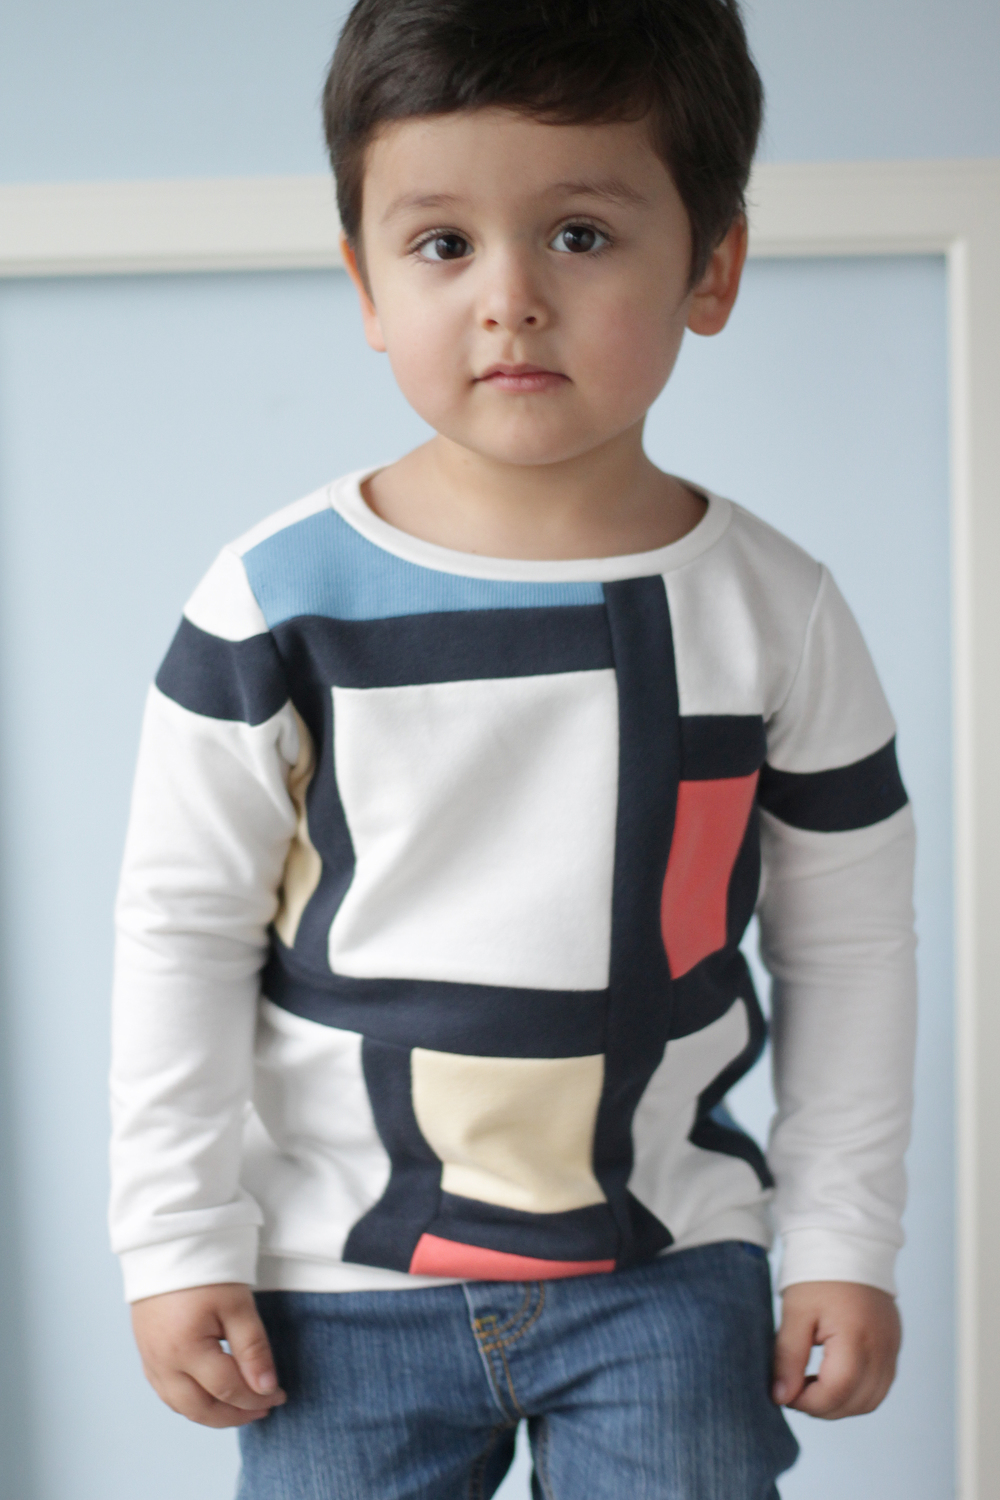 mondrian_sweater13.jpg